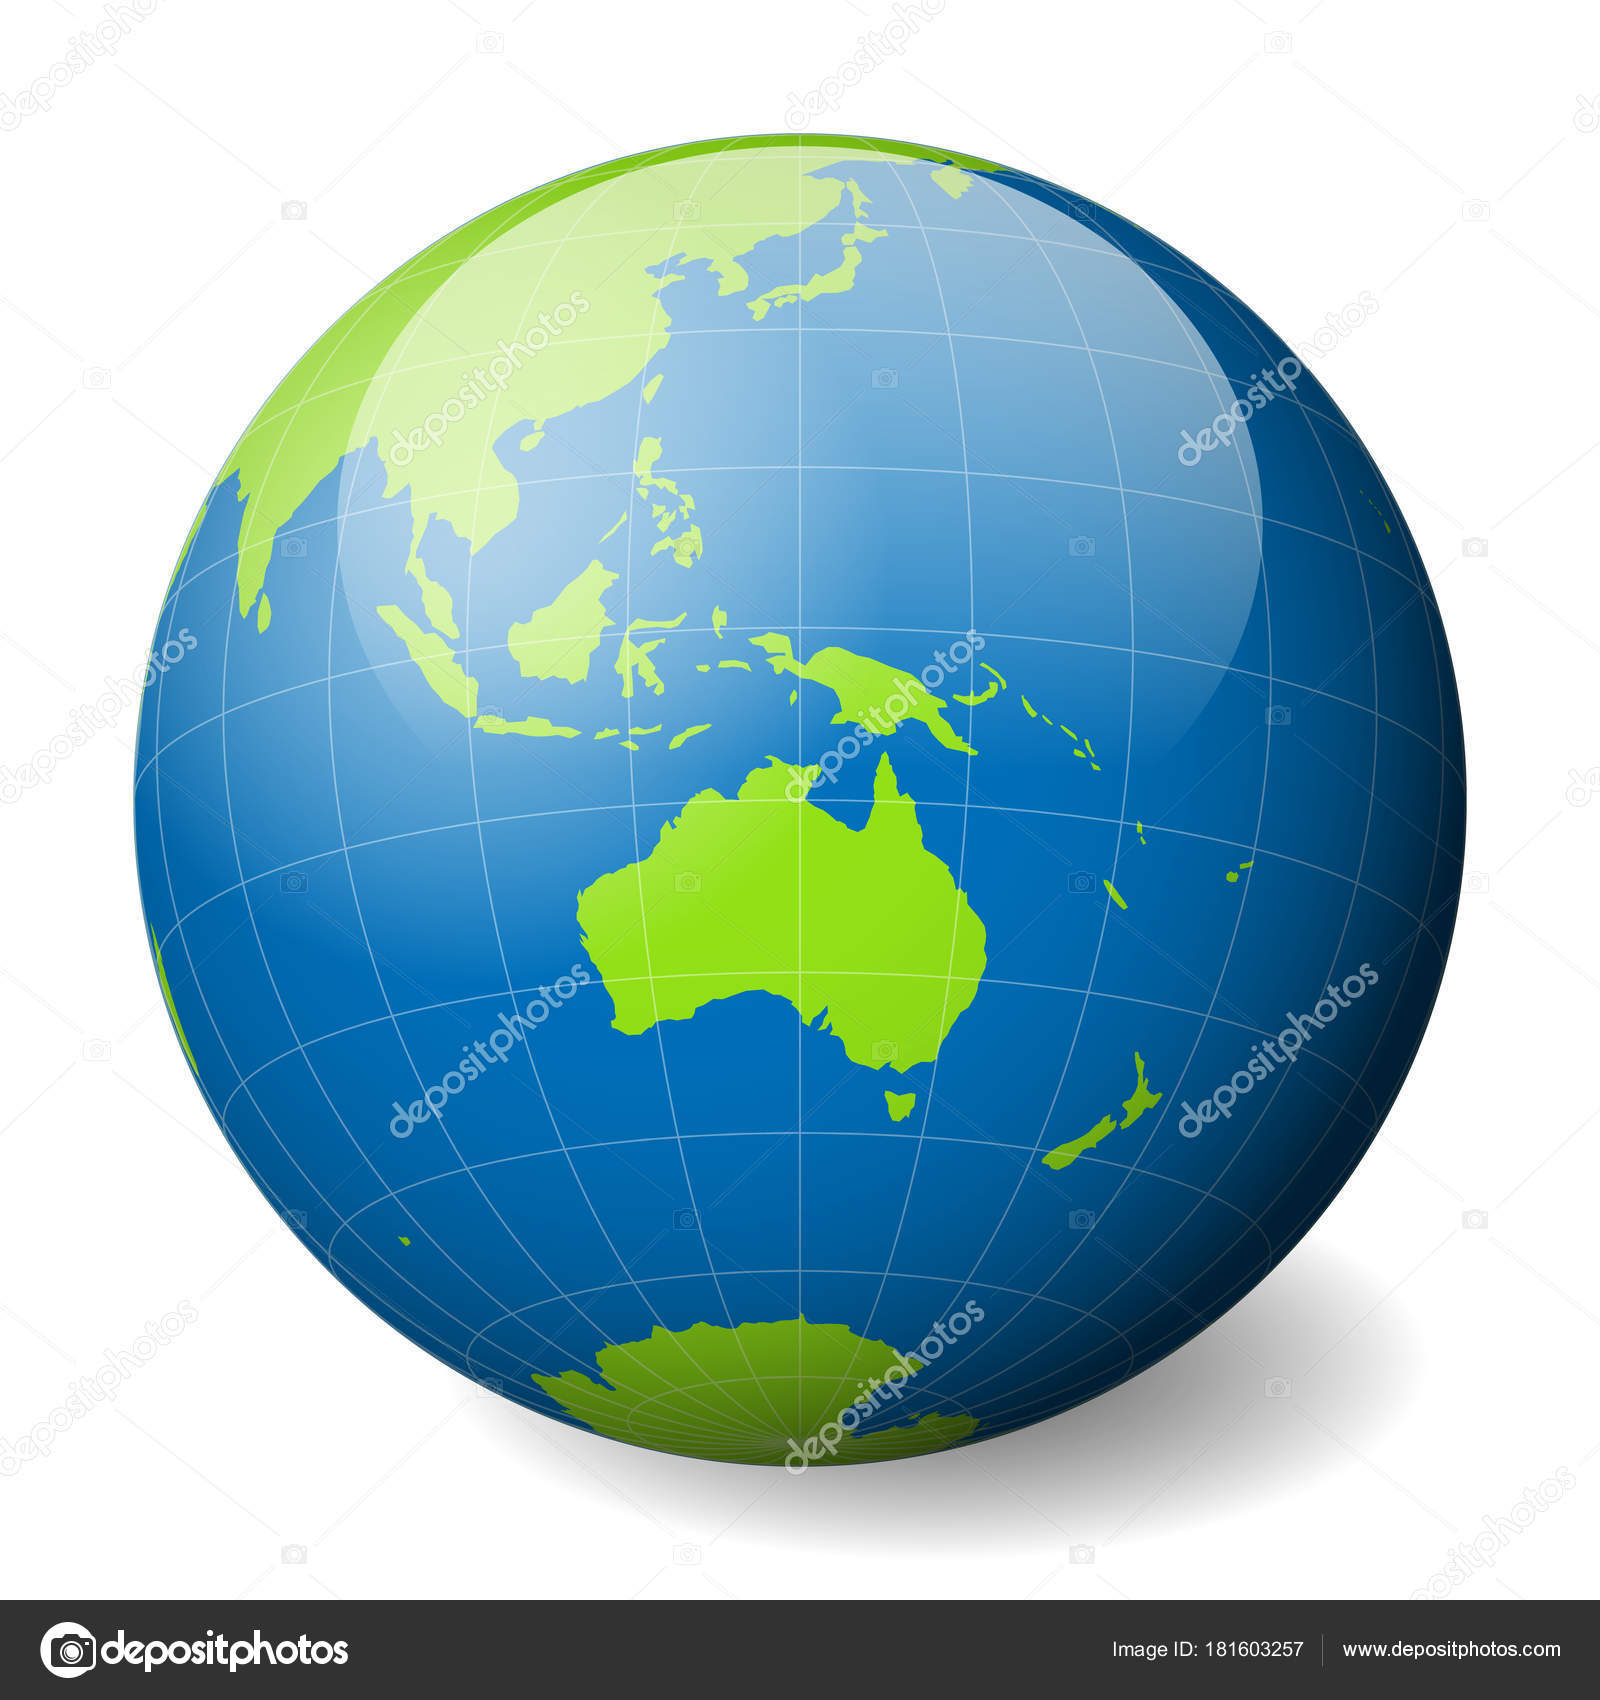 Australia Map Globe.Earth Globe With Green World Map And Blue Seas And Oceans Focused On